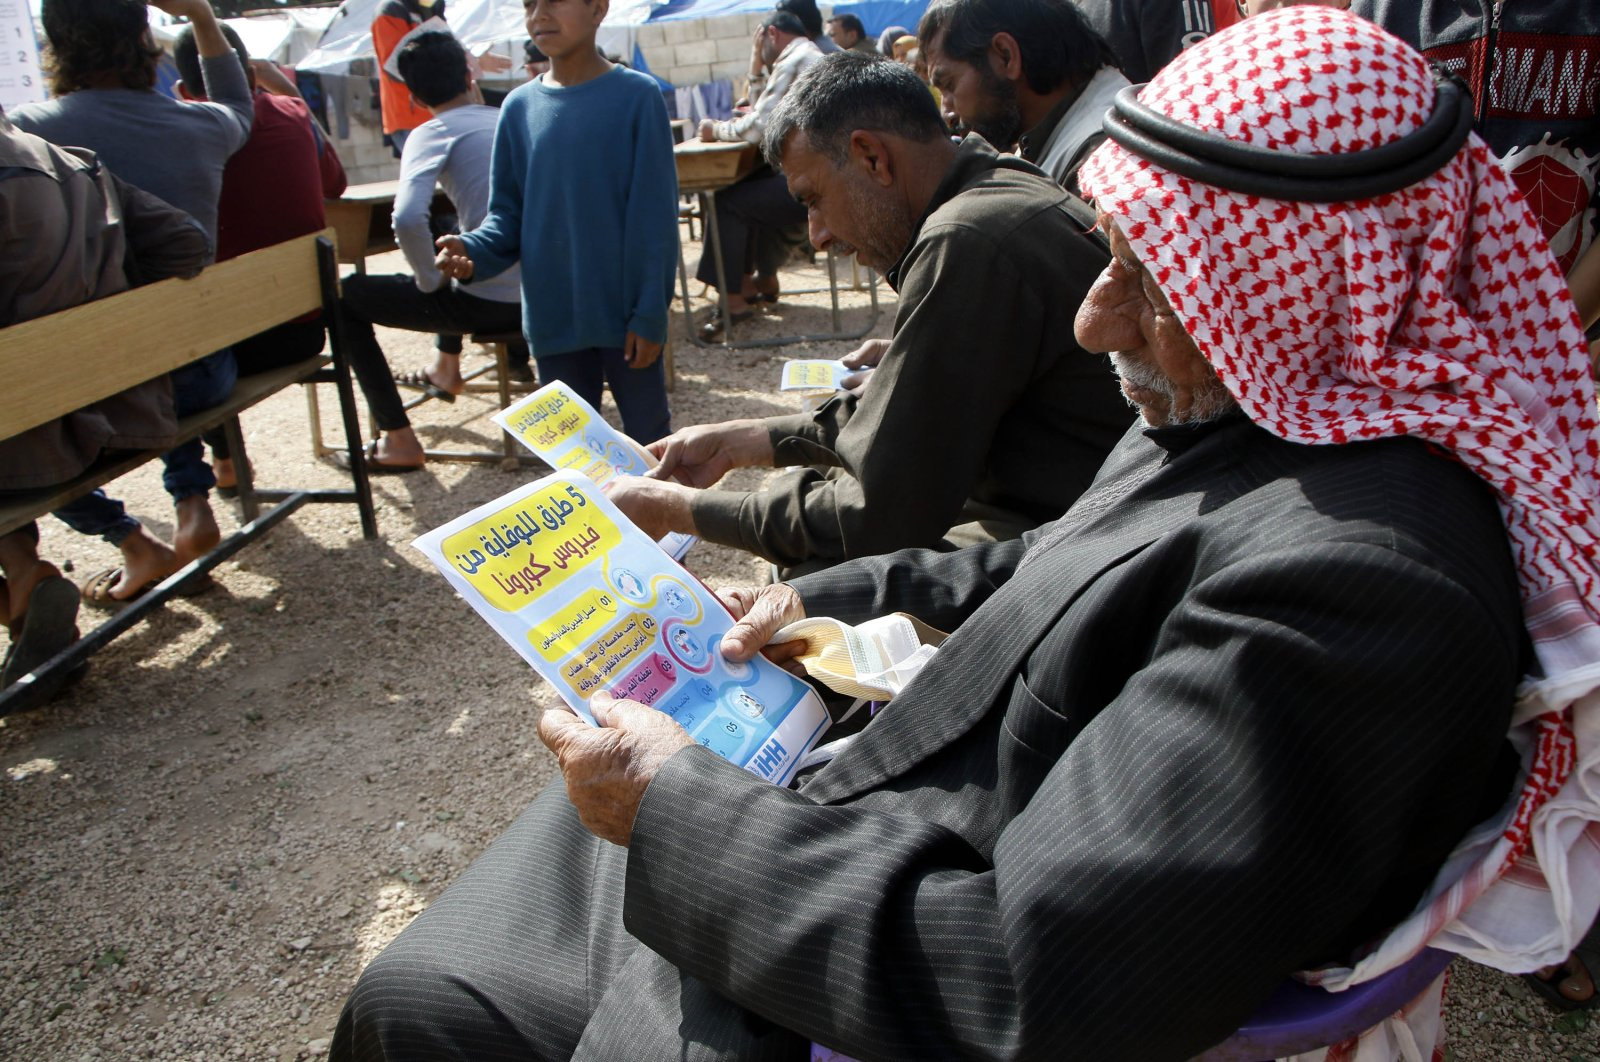 The Humanitarian Relief Foundation (İHH), is working to inform the displaced Syrians in Idlib about the coronavirus by hanging banners and handing out brochures, and conducting seminars, Thursday, March 26, 2020. (DHA)